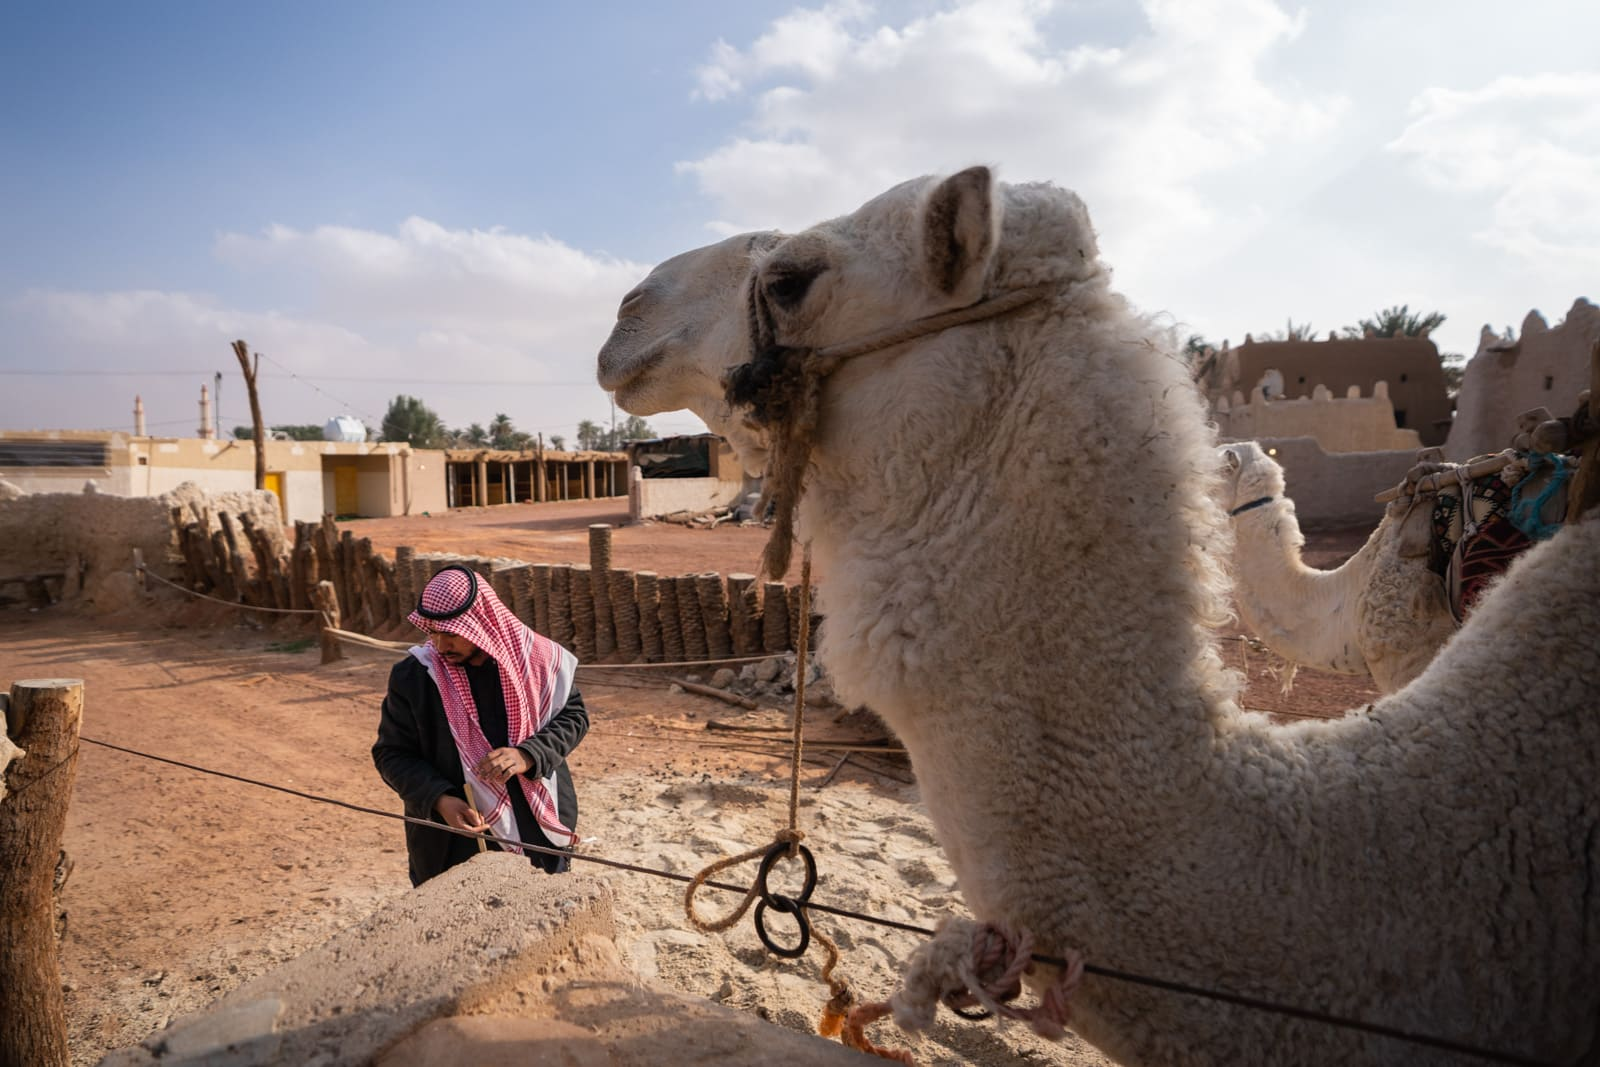 Camels at a well in Jubbah, Saudi Arabia